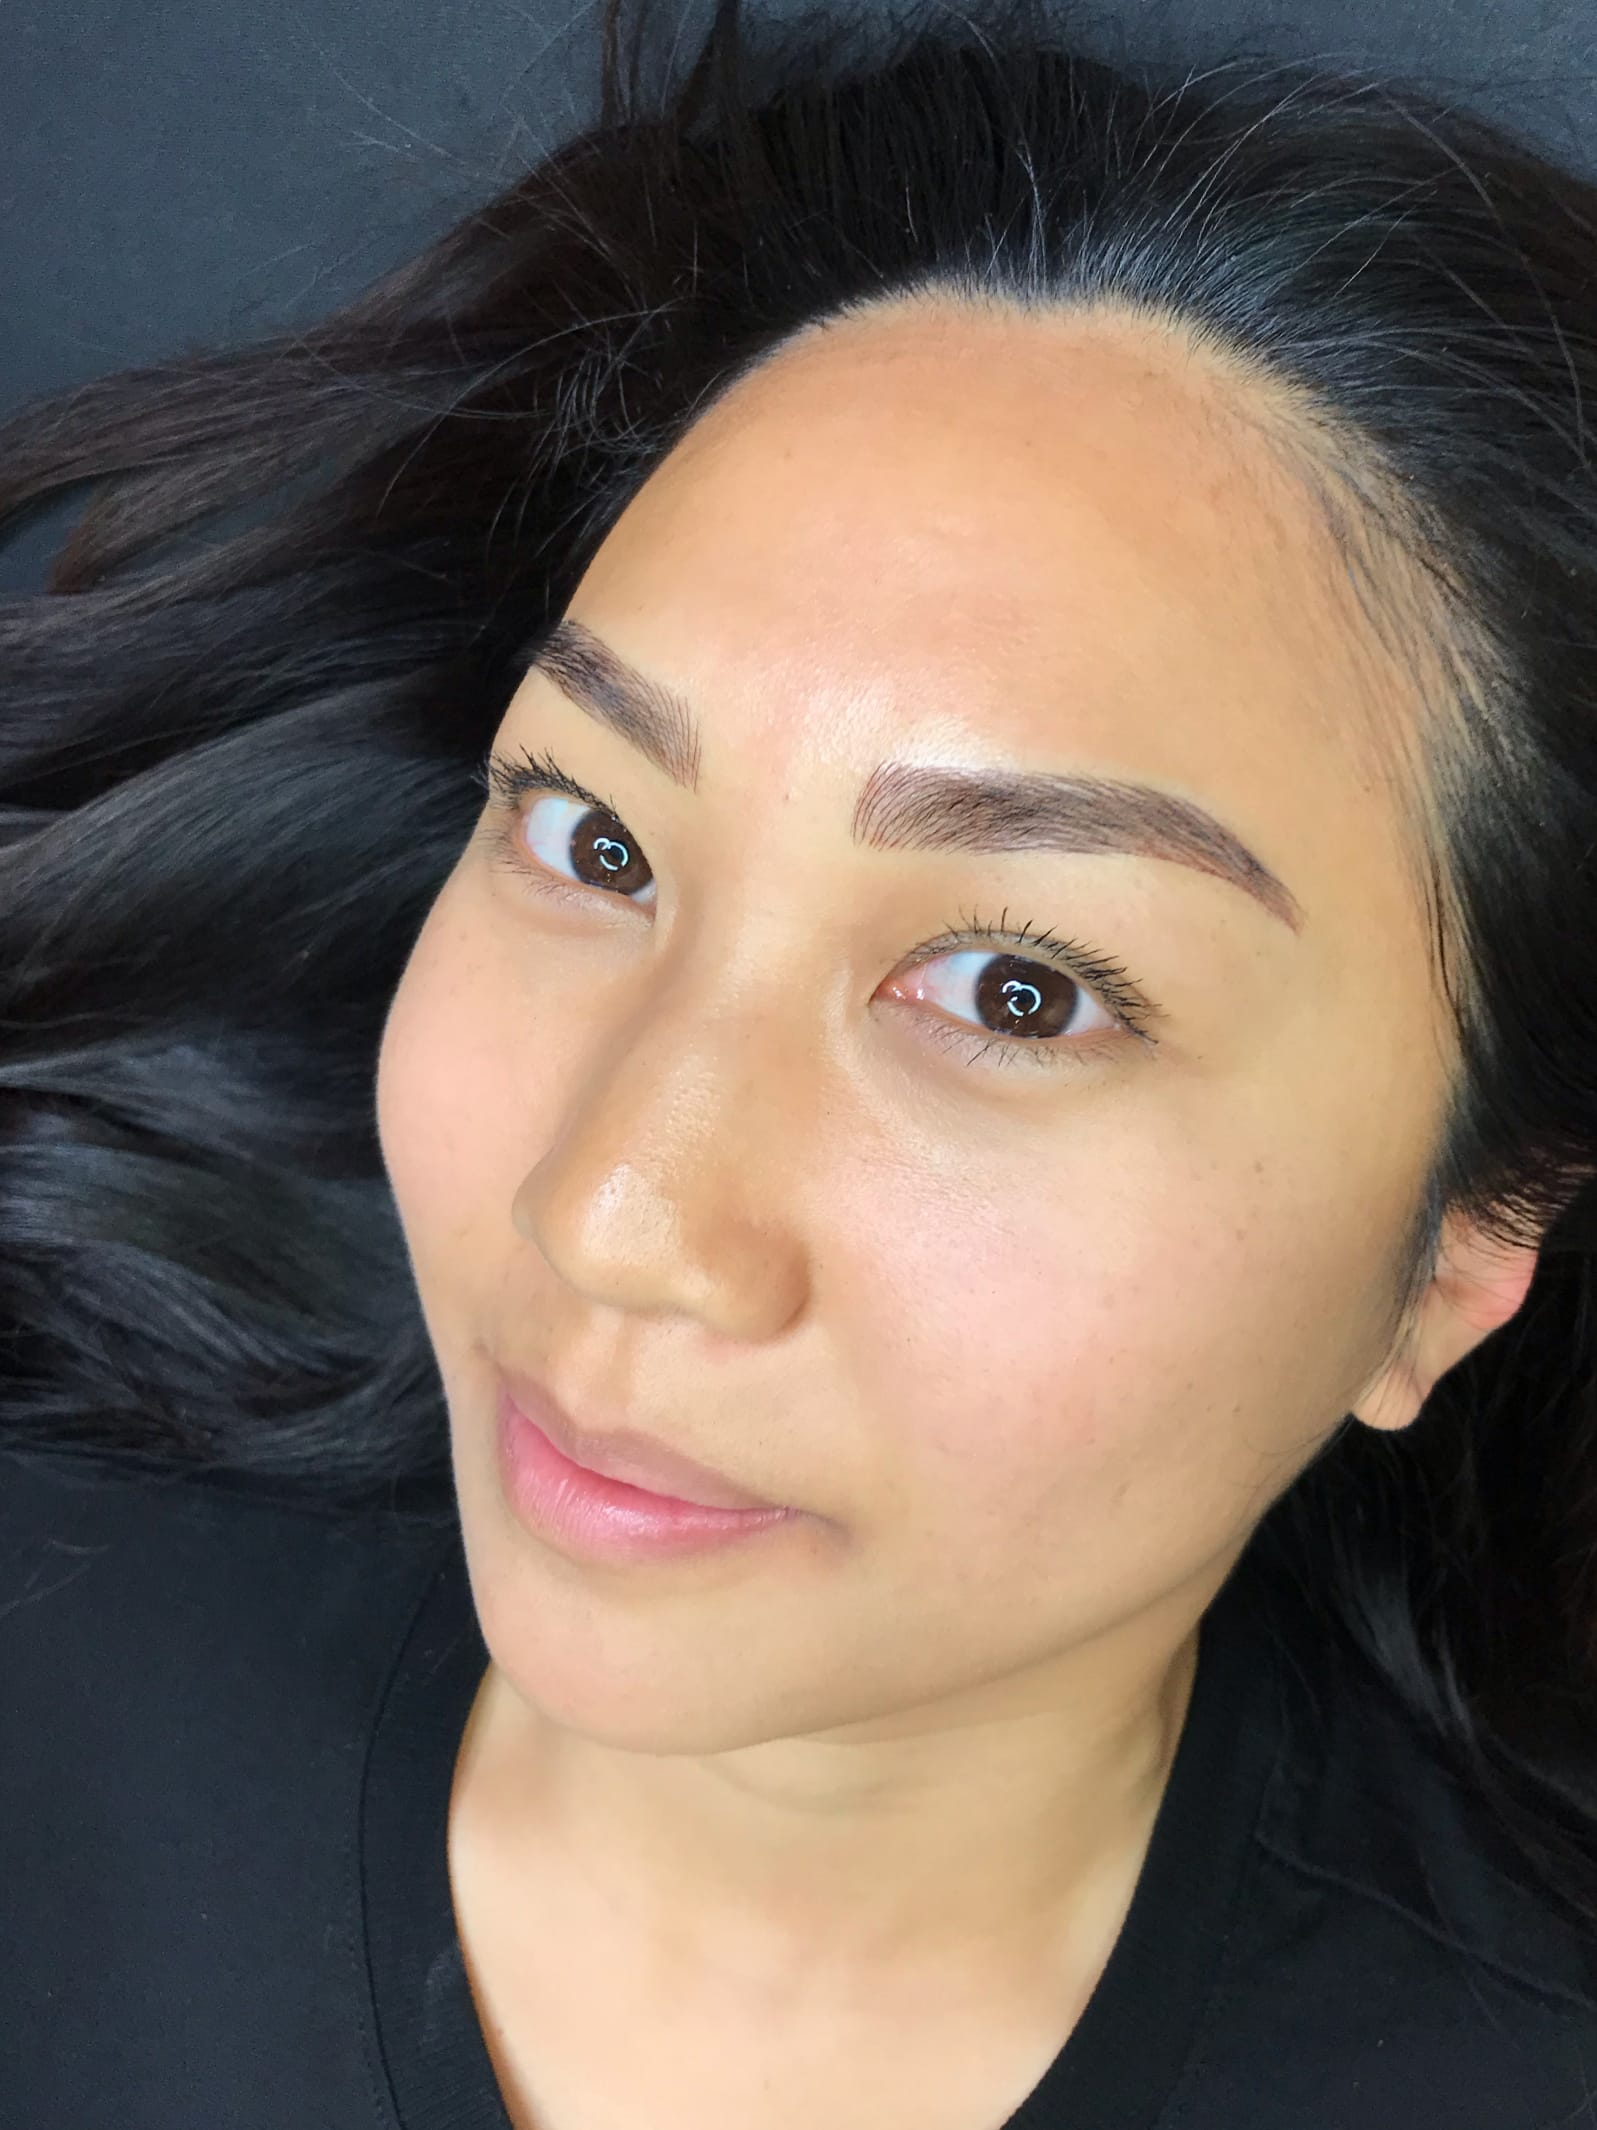 what eyebrows look right after best microblading NYC